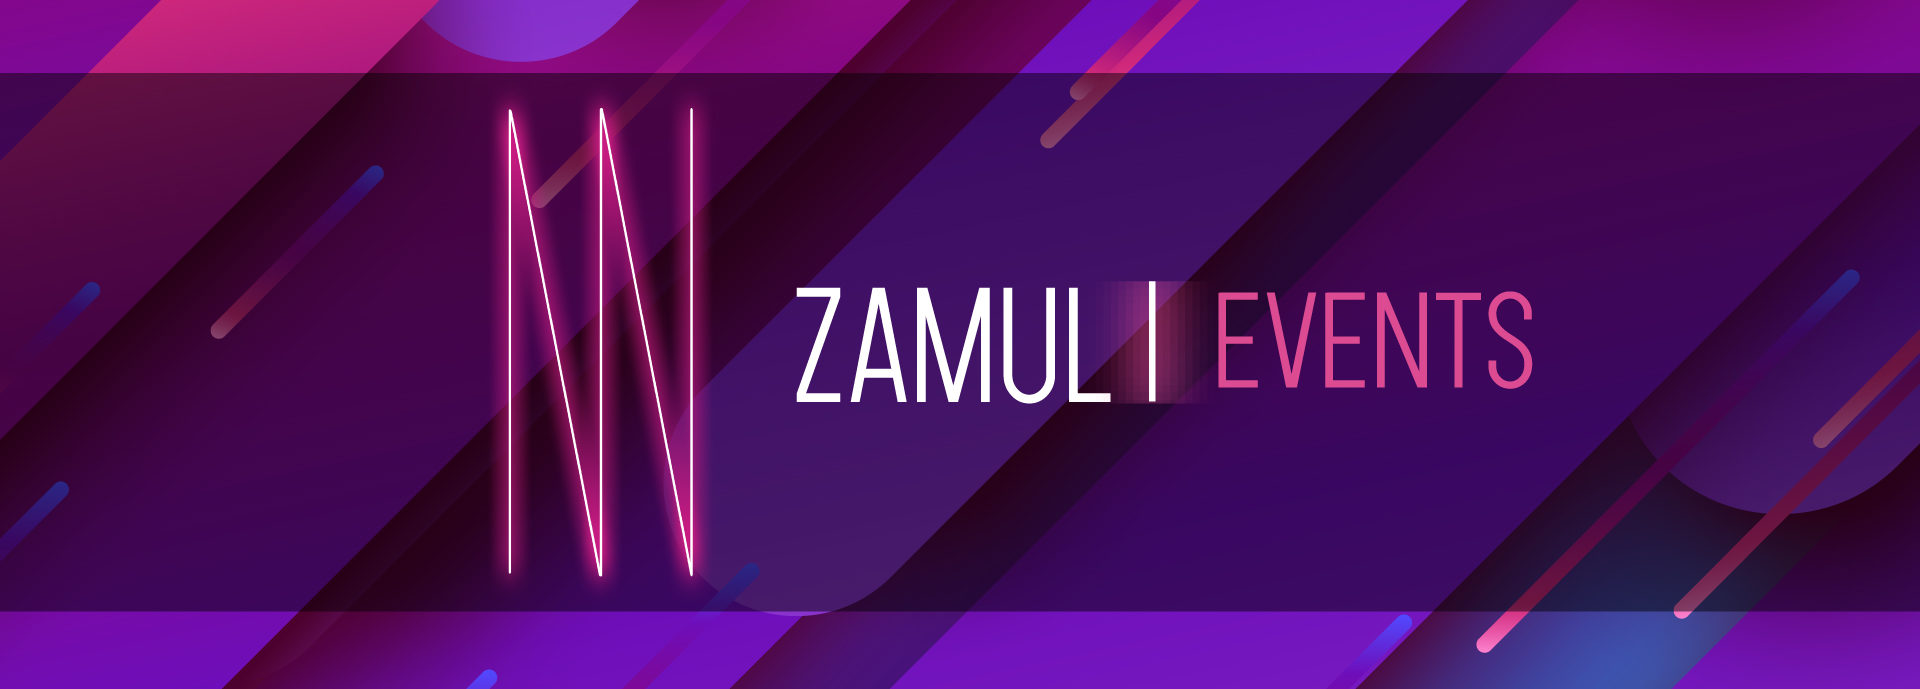 Zamul Events